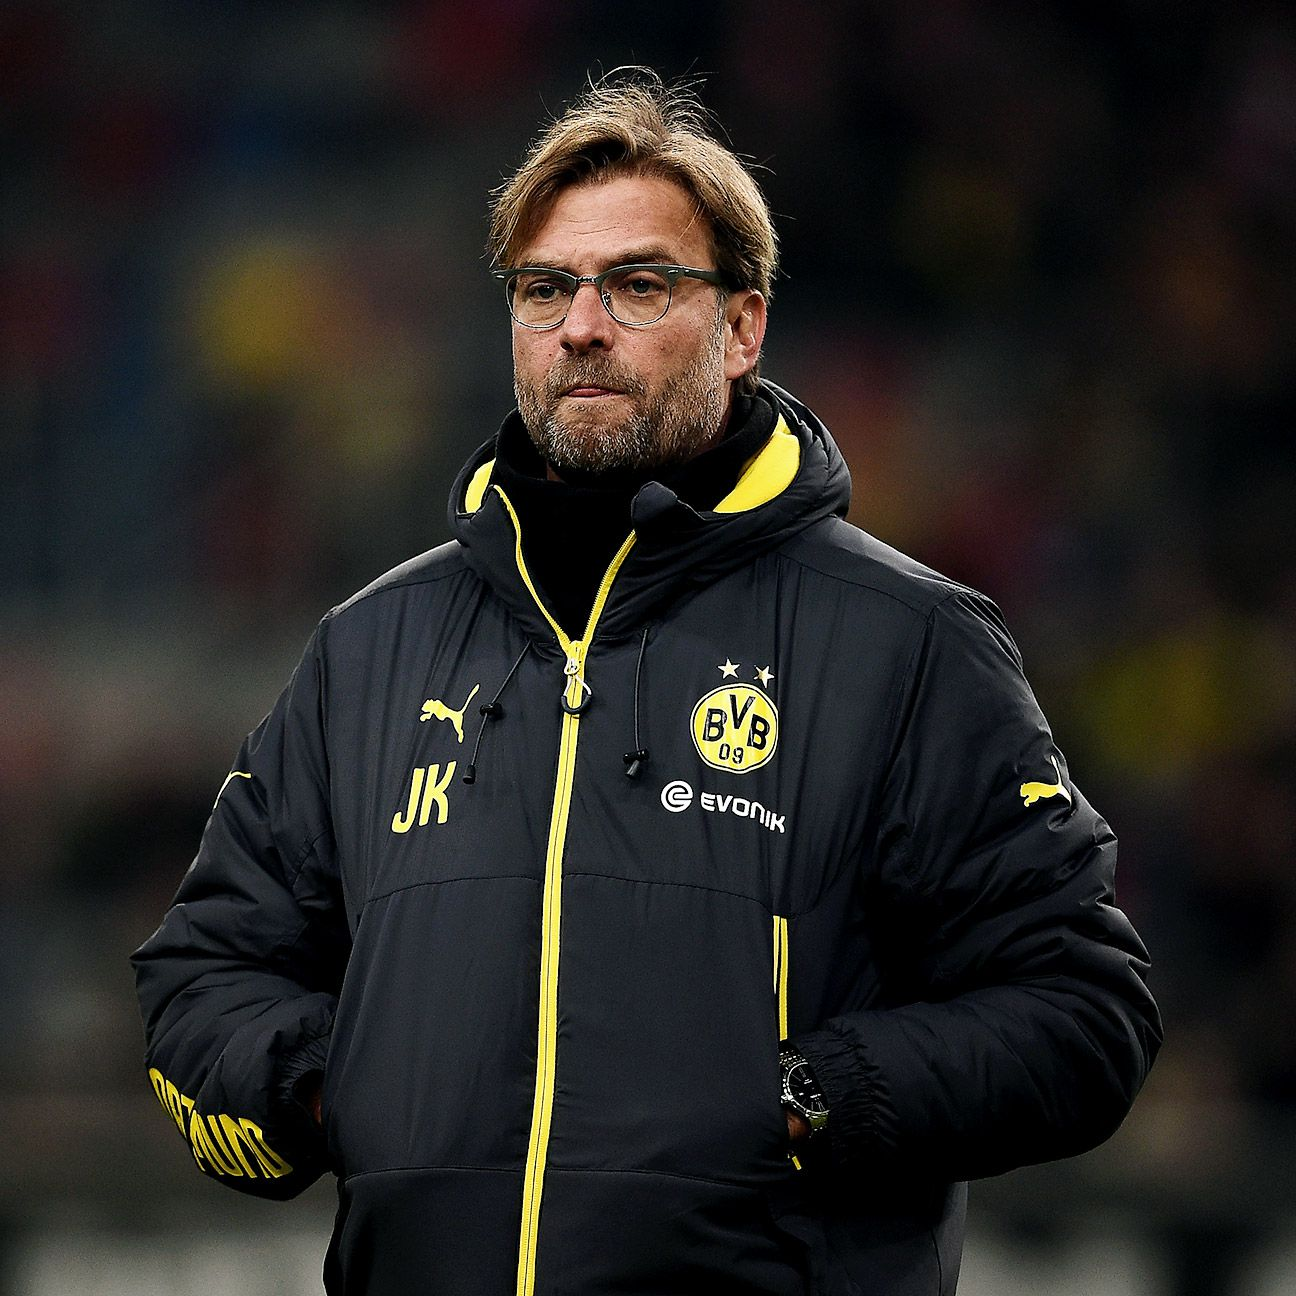 Jurgen Klopp's Borussia Dortmund are within reach of a Europa League spot, but some argue that the tournament would not be in the club's best interest for the 2015-16 season.